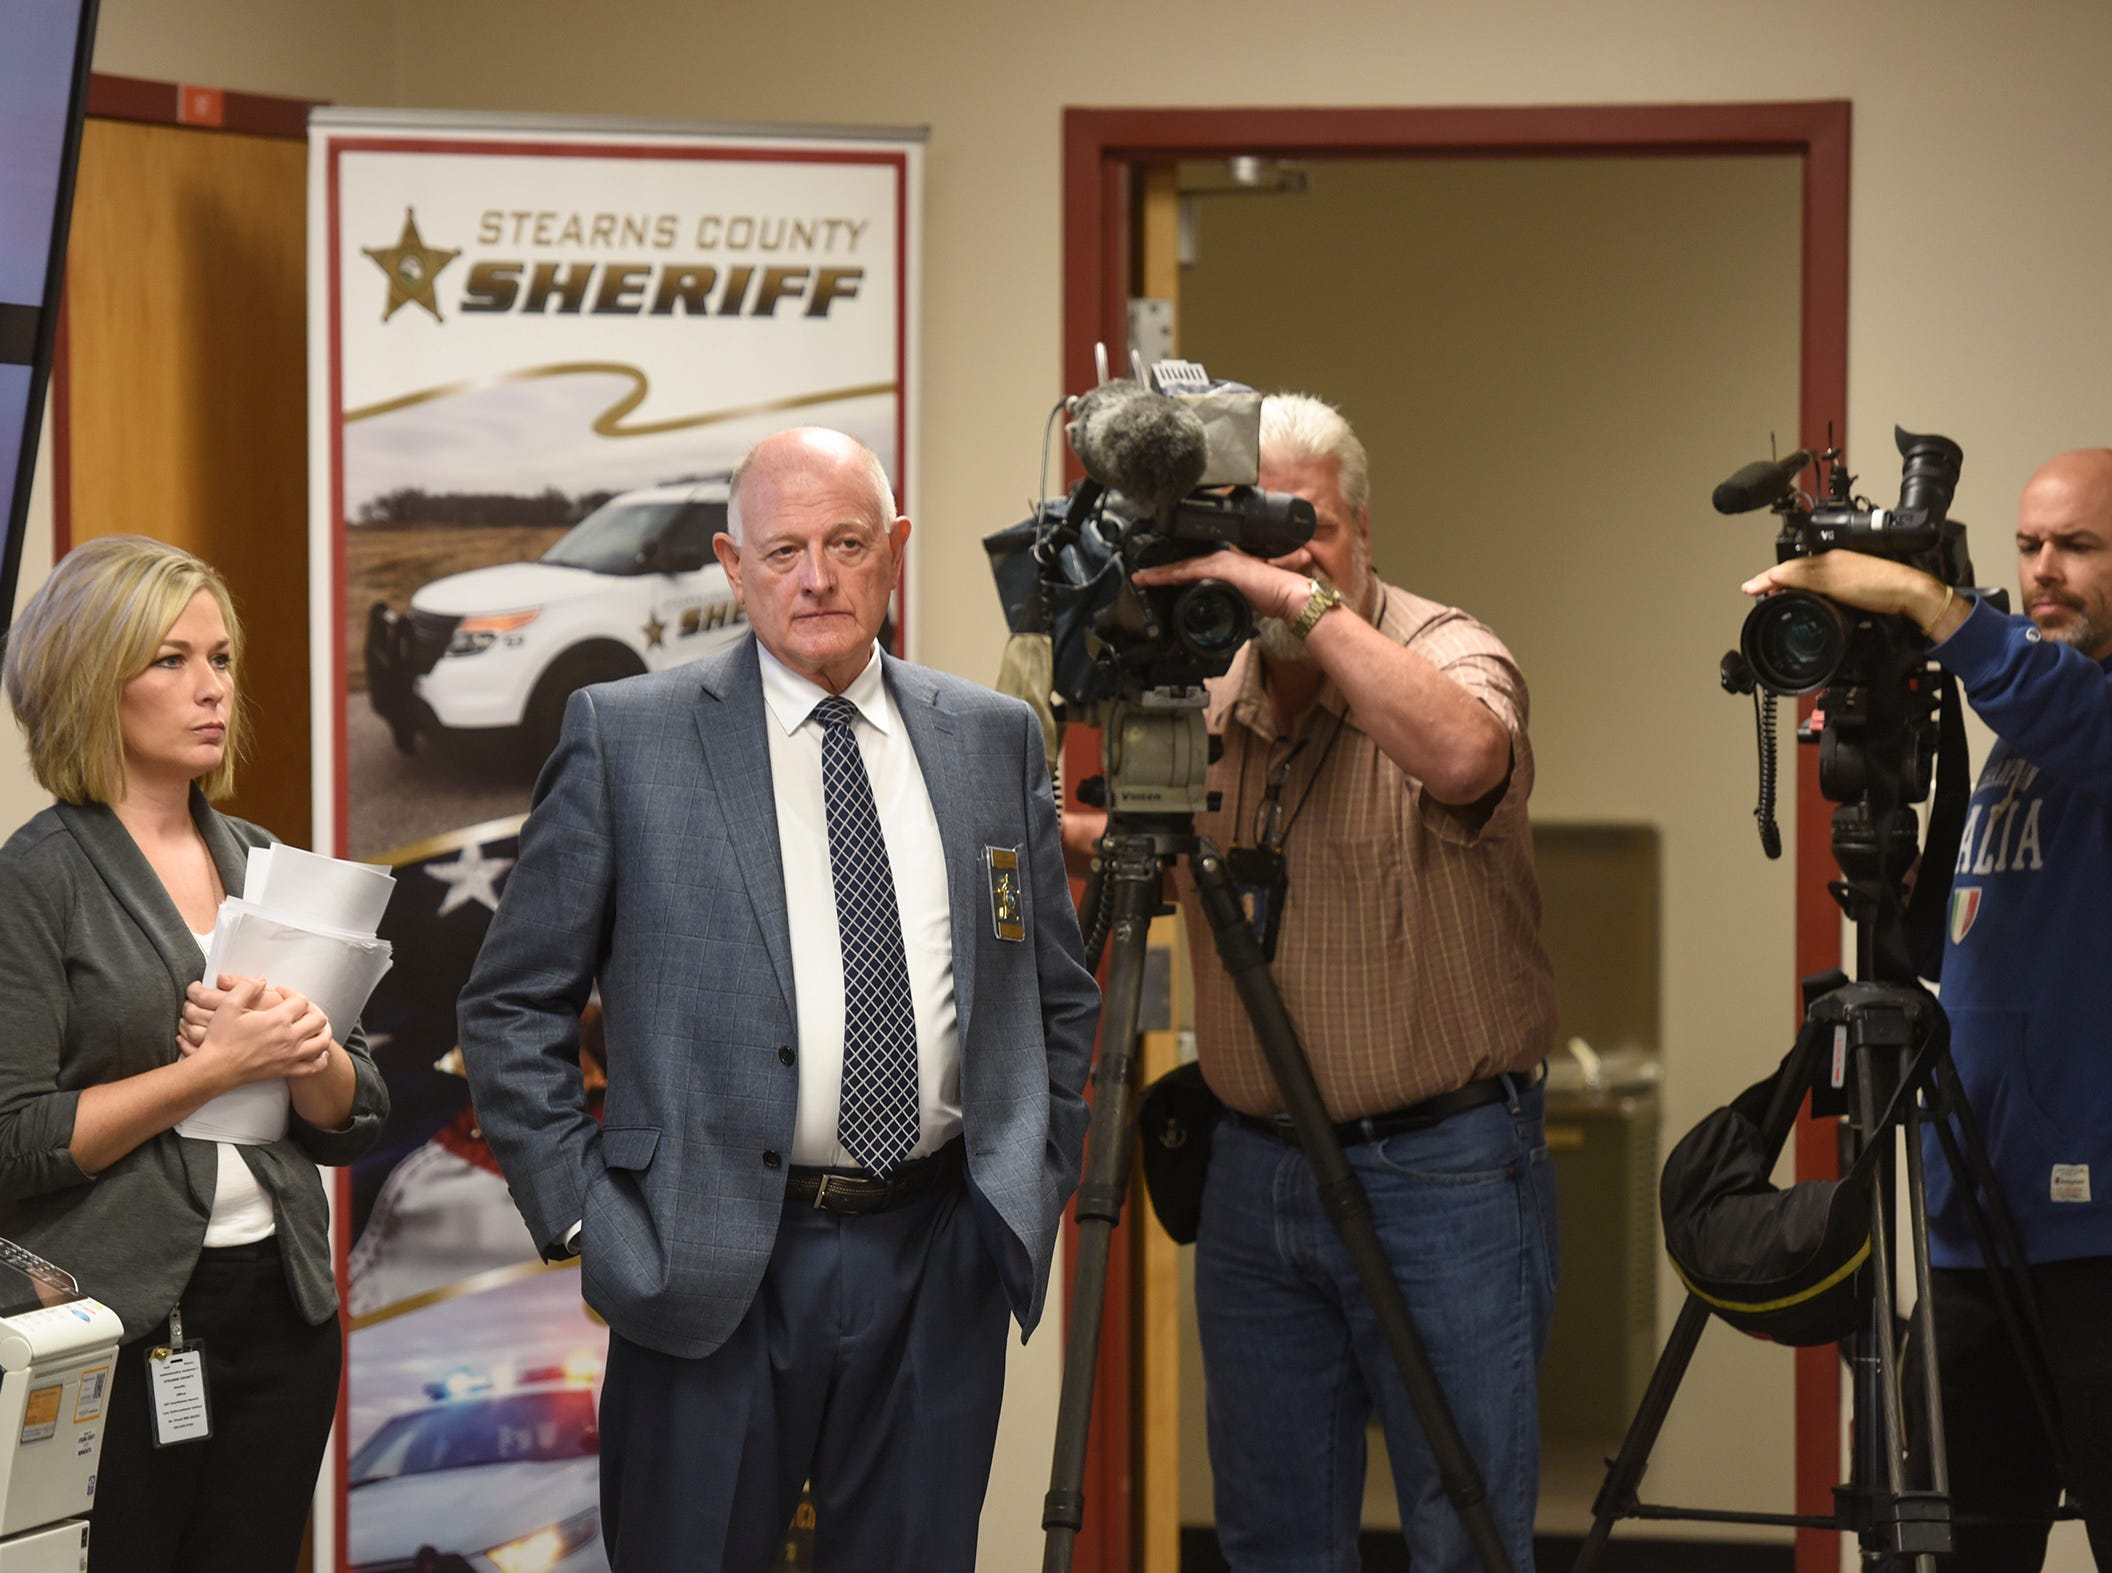 Stearns County Sheriff Don Gudmundson prepares to speak during a press conference for the release of investigative files in the Jacob Wetterling case Thursday, Sept. 20, 2018, in St. Cloud.